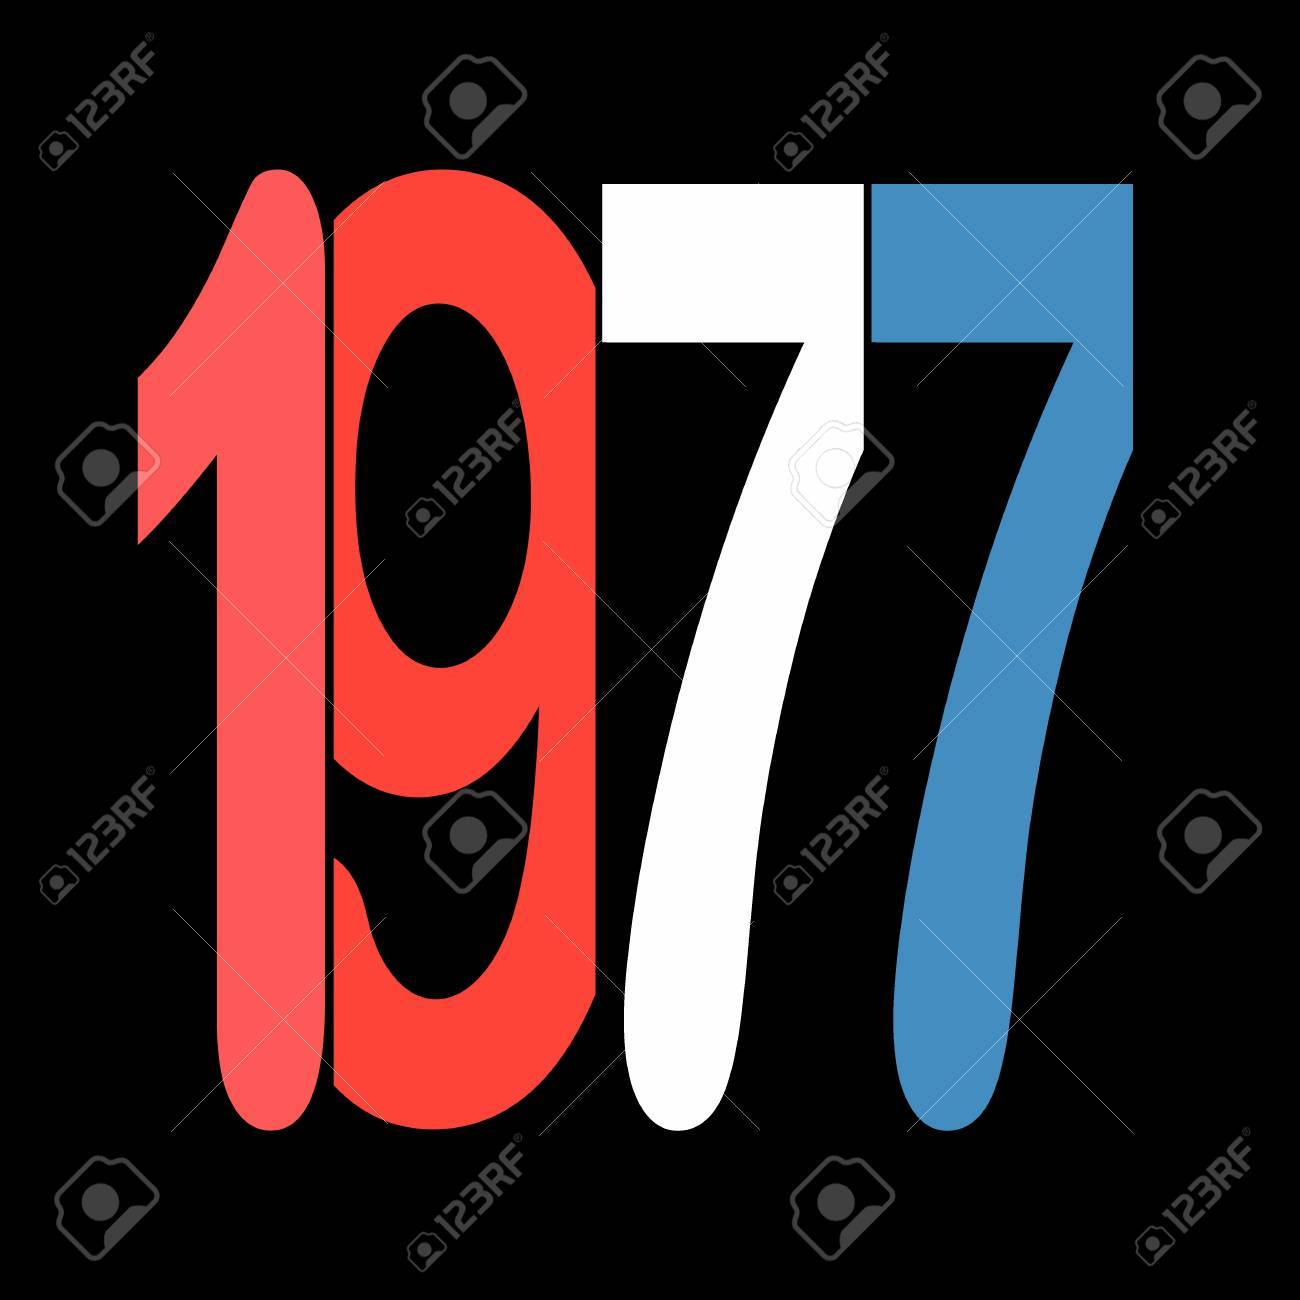 Year 1977 Stock Photo, Picture And Royalty Free Image. Image 85546719.